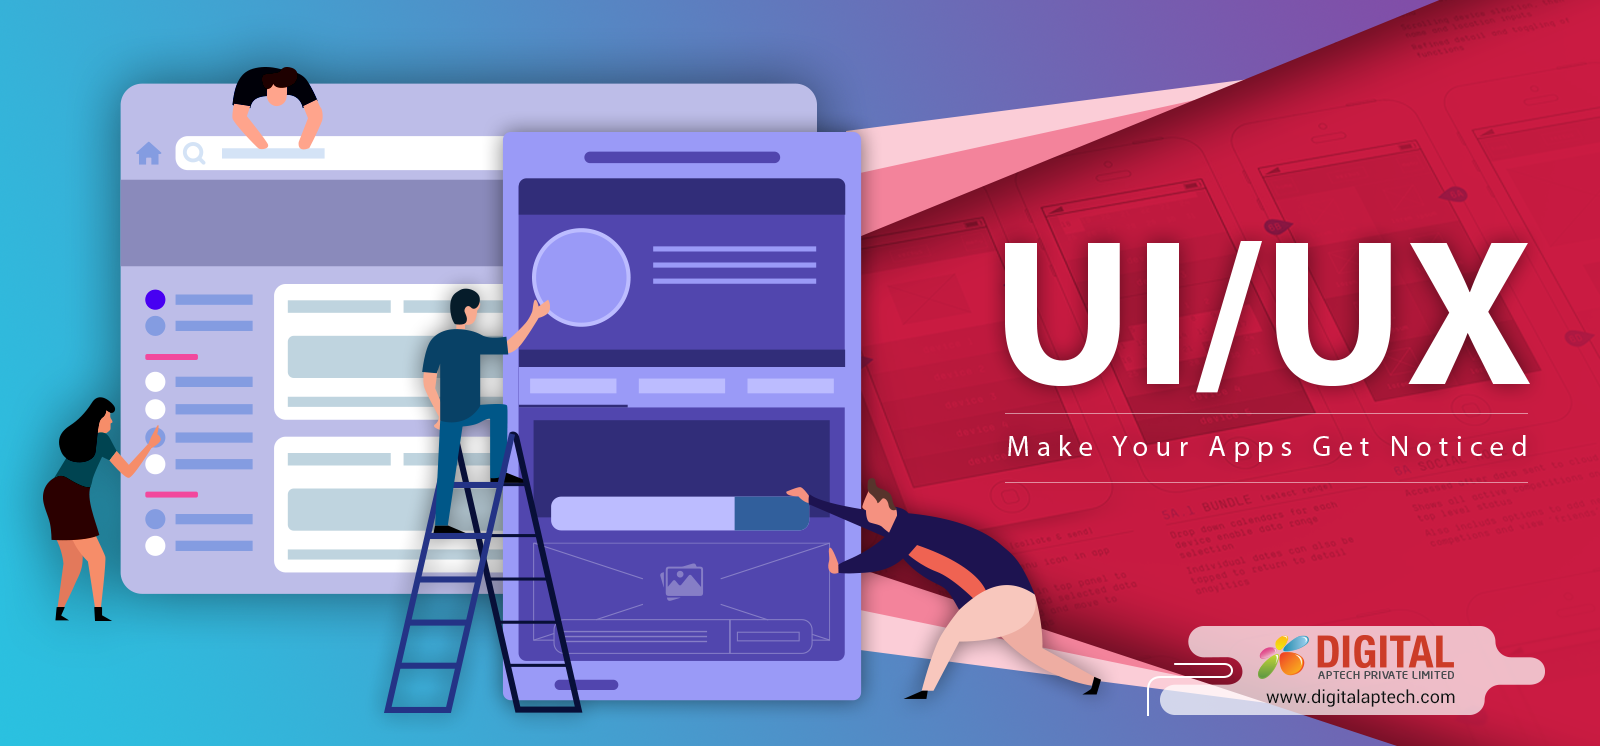 UI/UX Design: The Key to Make Your App Successful